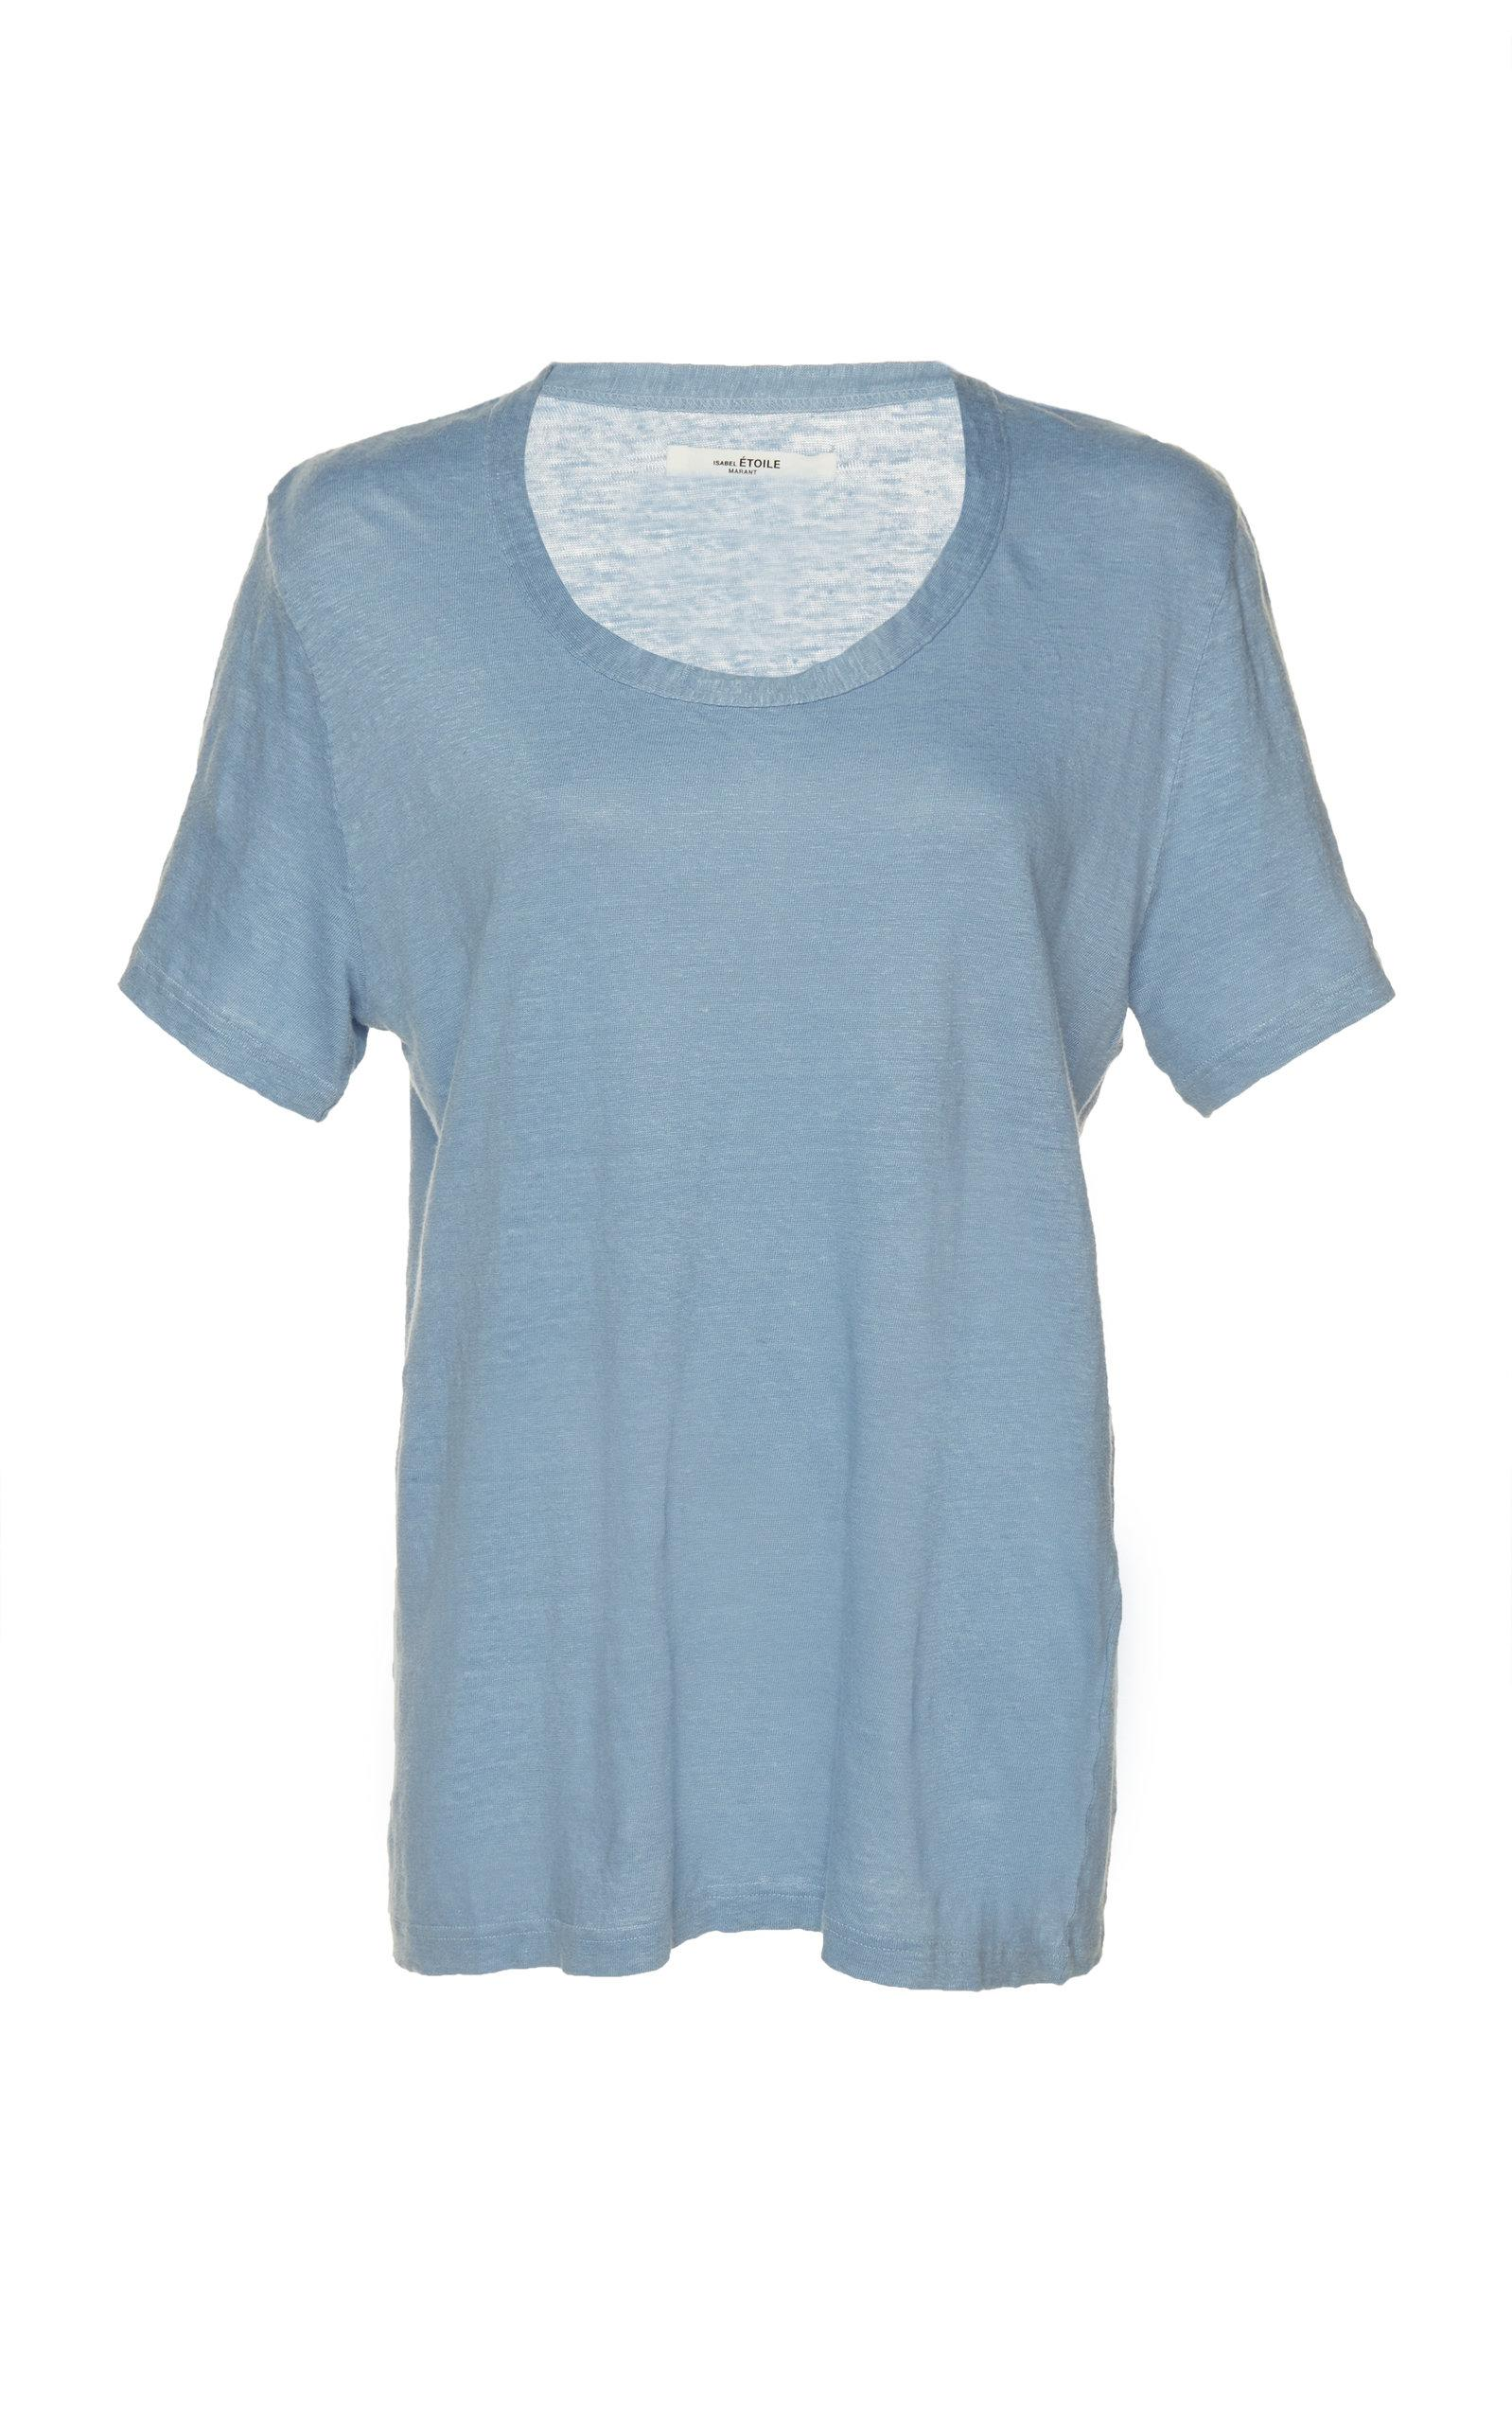 ffdd074264 Etoile Isabel Marant Kiliann Linen T-Shirt In Blue